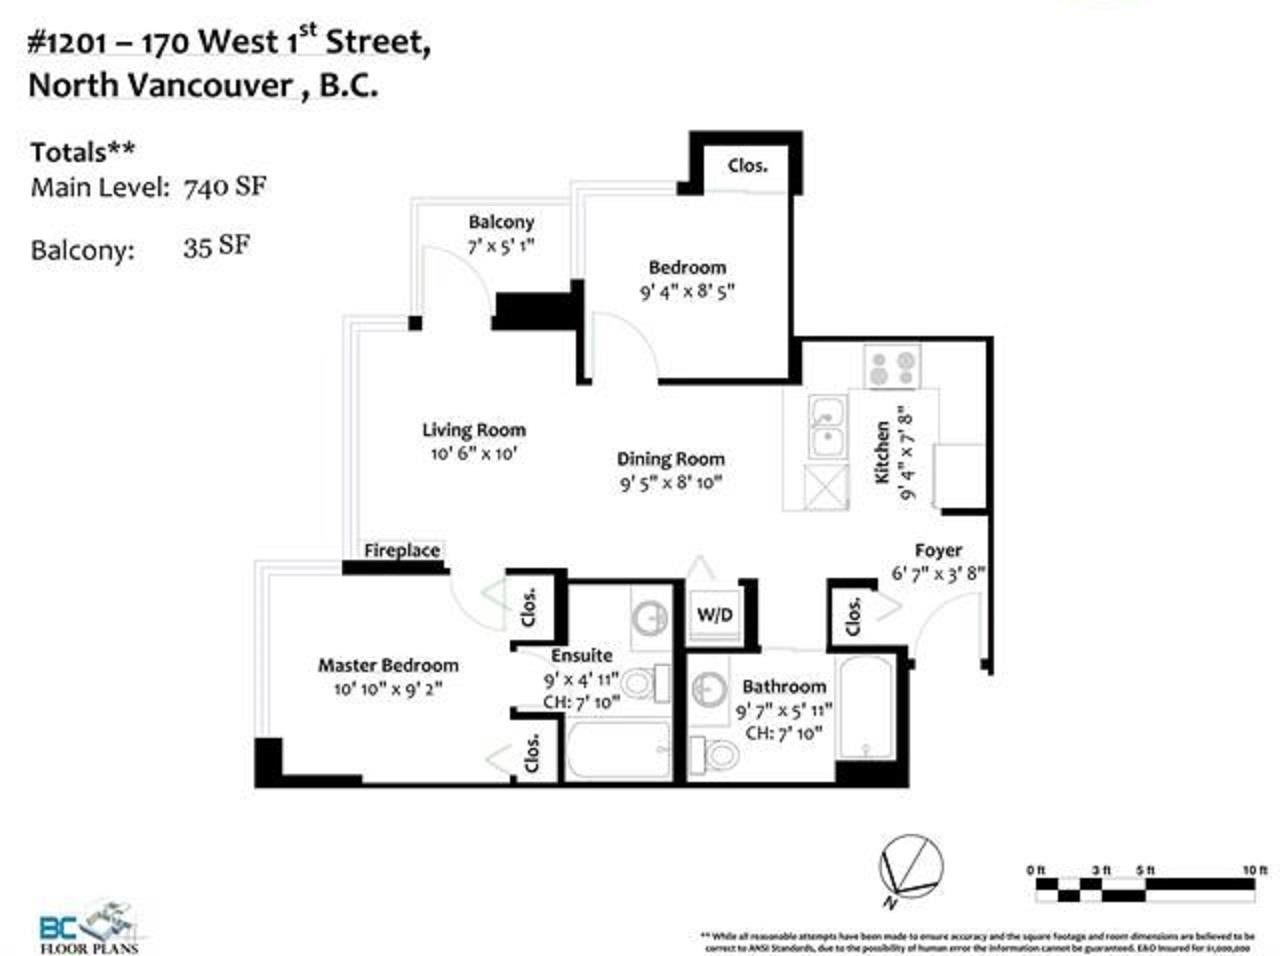 1201 170 W 1ST STREET - Lower Lonsdale Apartment/Condo for sale, 2 Bedrooms (R2603325) - #25